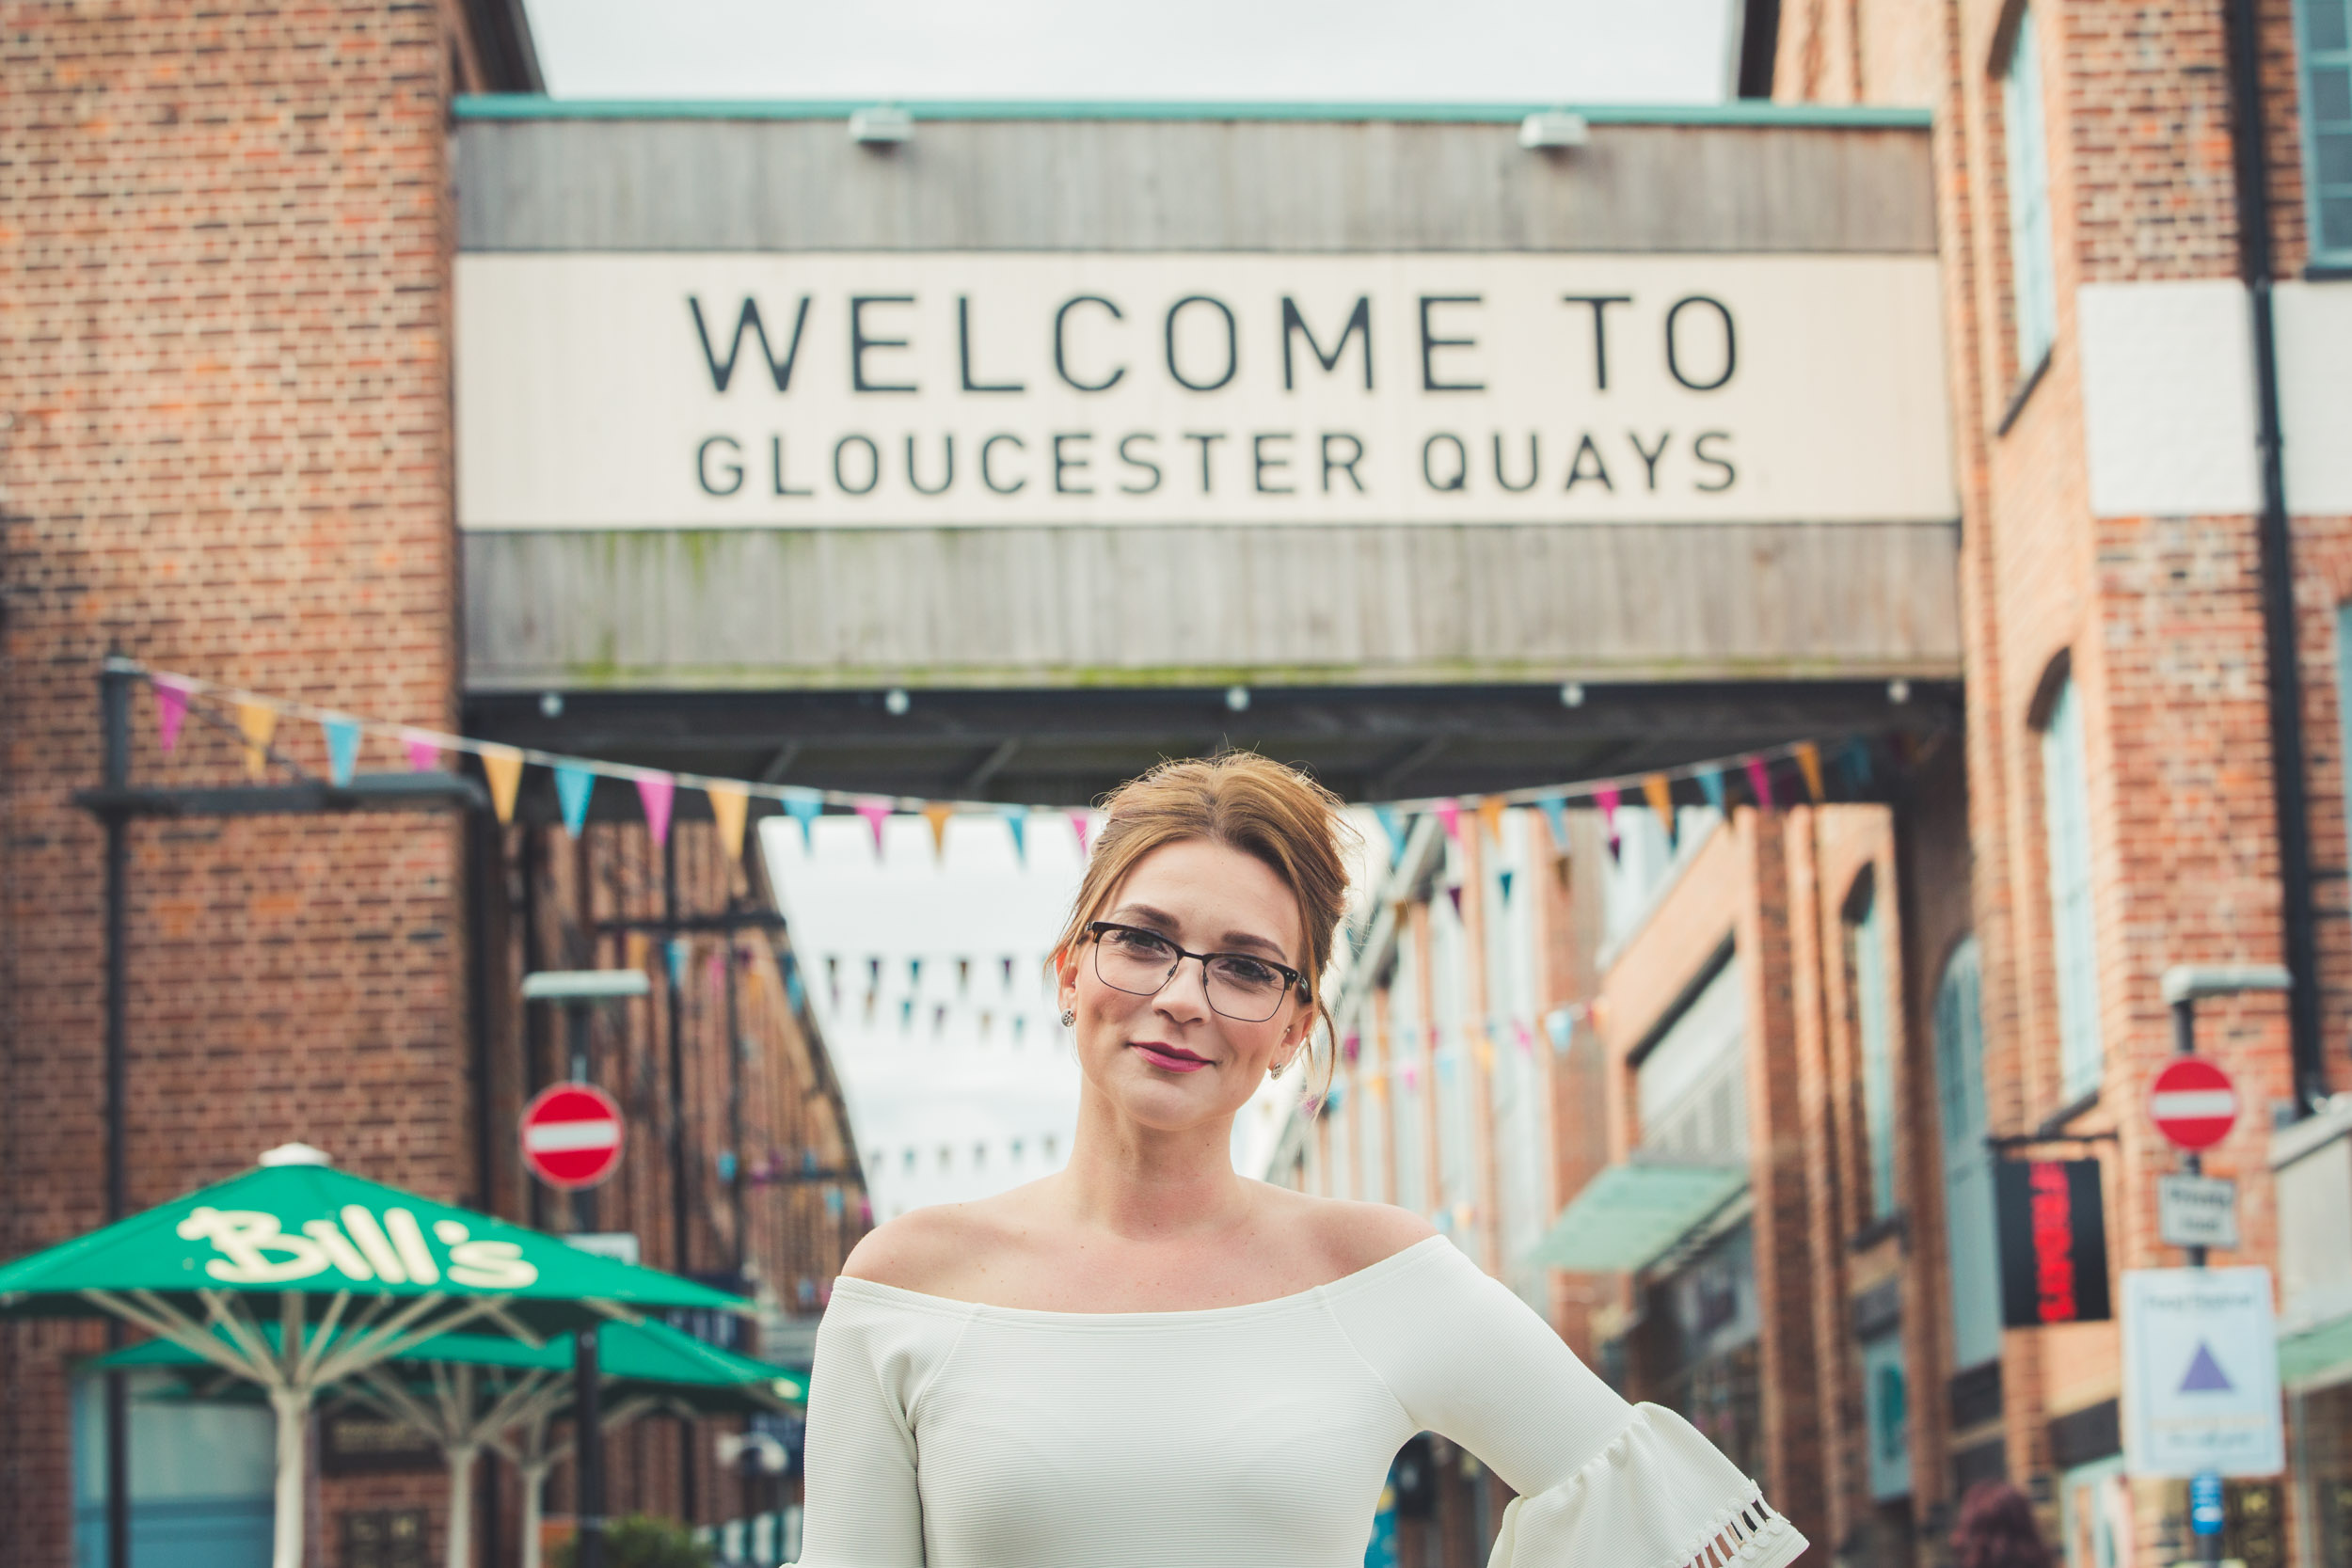 Candice Brown headlined the line up of celebrity chefs at Gloucester Quays Food Festival 2017 from July 28-30.